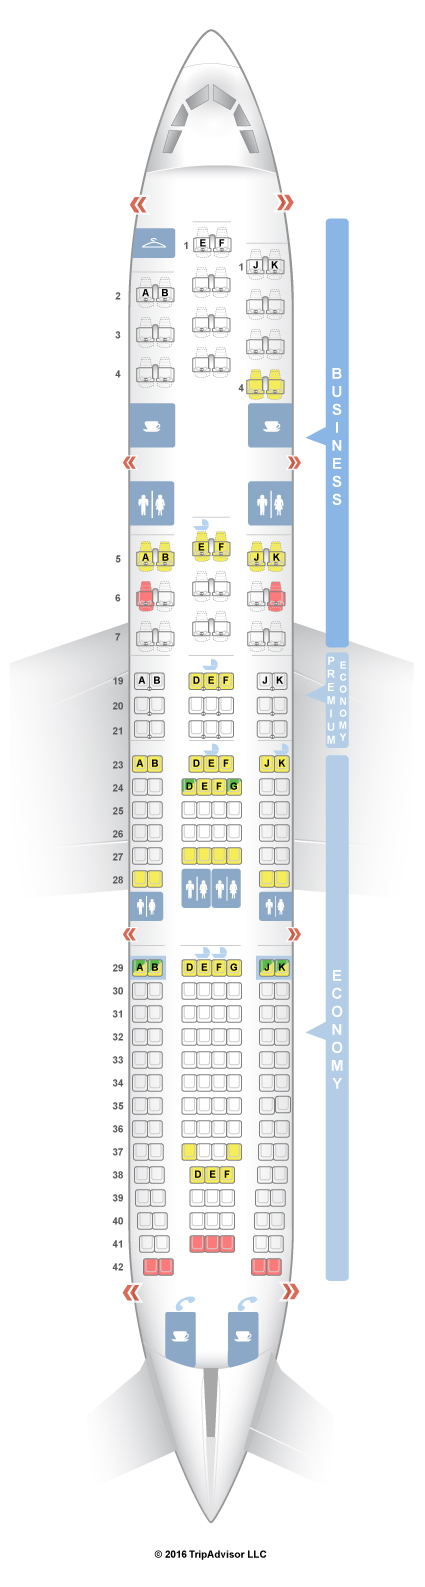 Frontier Airlines Seating Chart Airbus A320